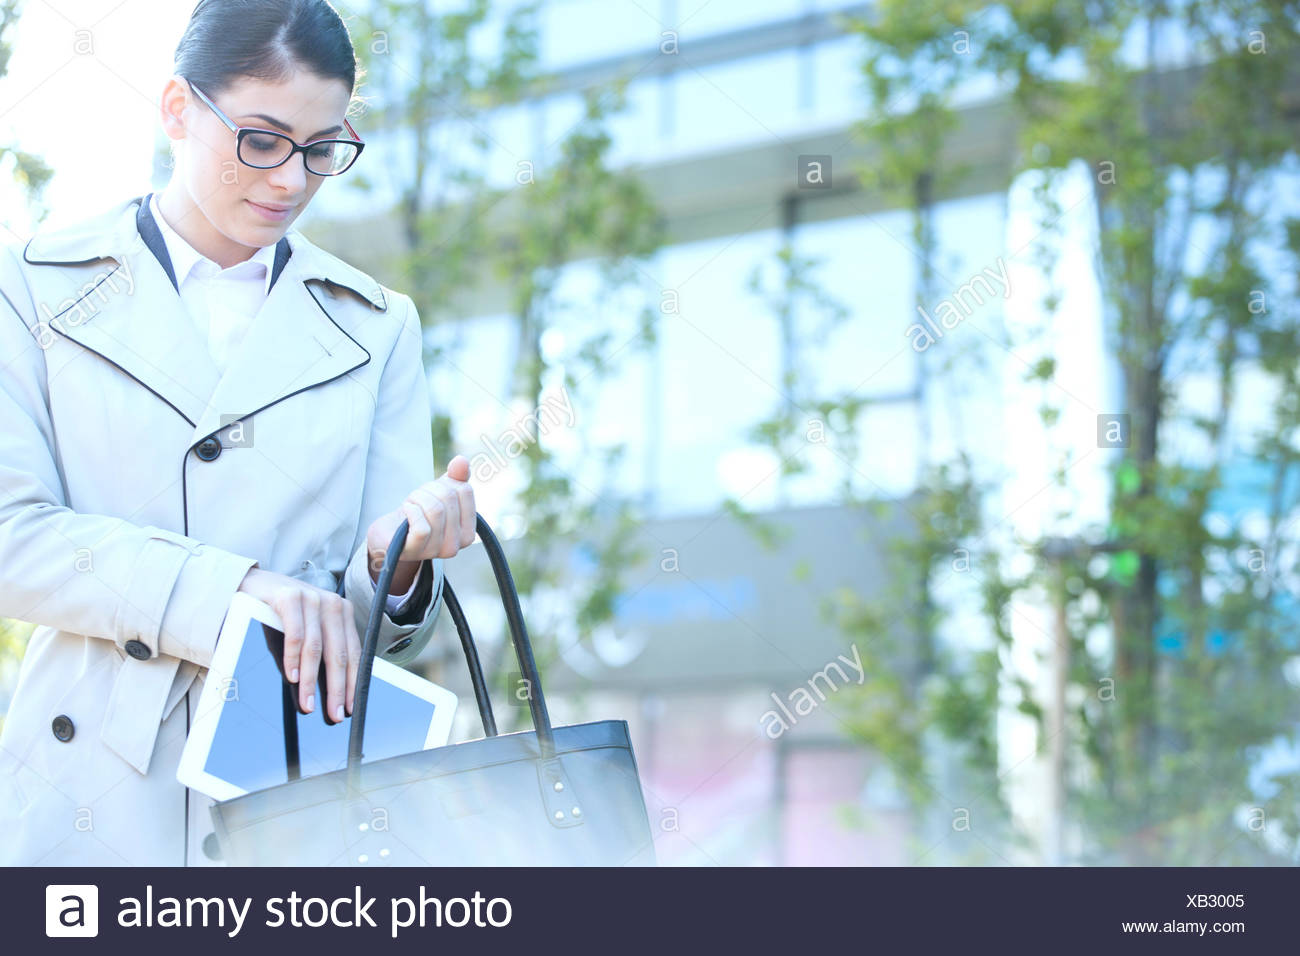 Businesswoman putting digital tablet in purse outdoors Photo Stock